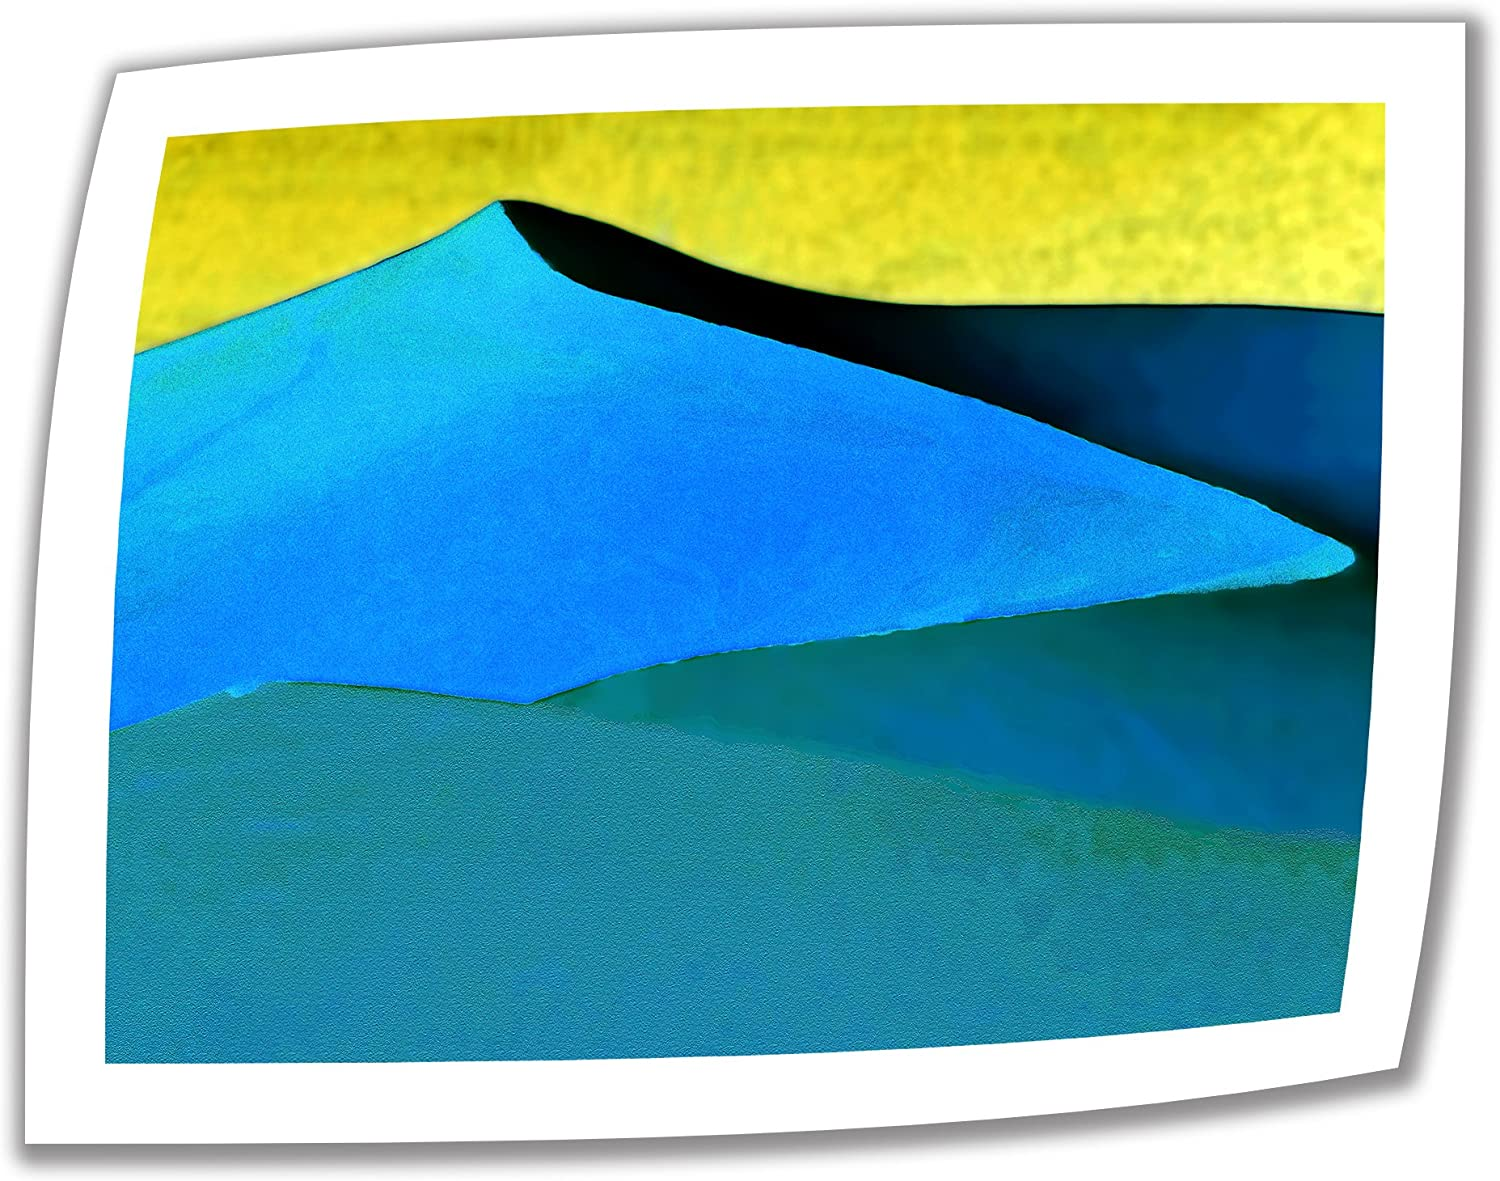 Art Wall Evening at The Dunes 14 by 18Inch Unwrapped Canvas Art by Linda Parker with 2Inch Accent Border